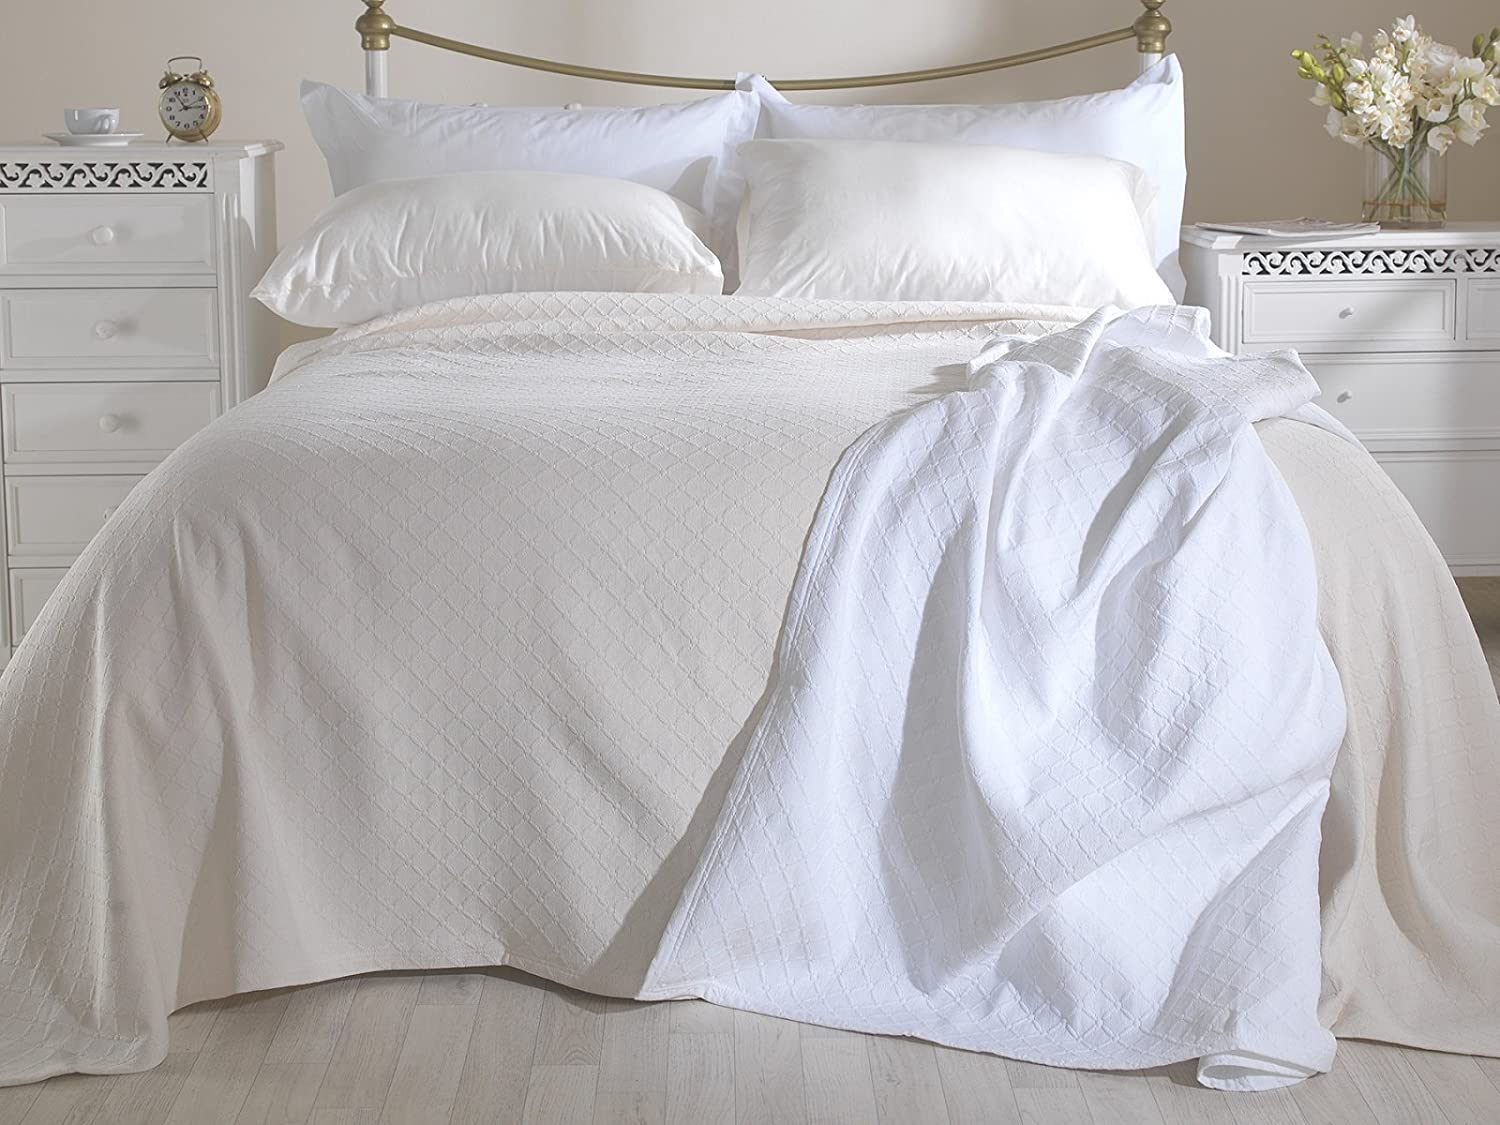 Lancashire Textiles Matelasse Cotton Rich Diamond Pattern Embossed Arina Double Bedspread in White